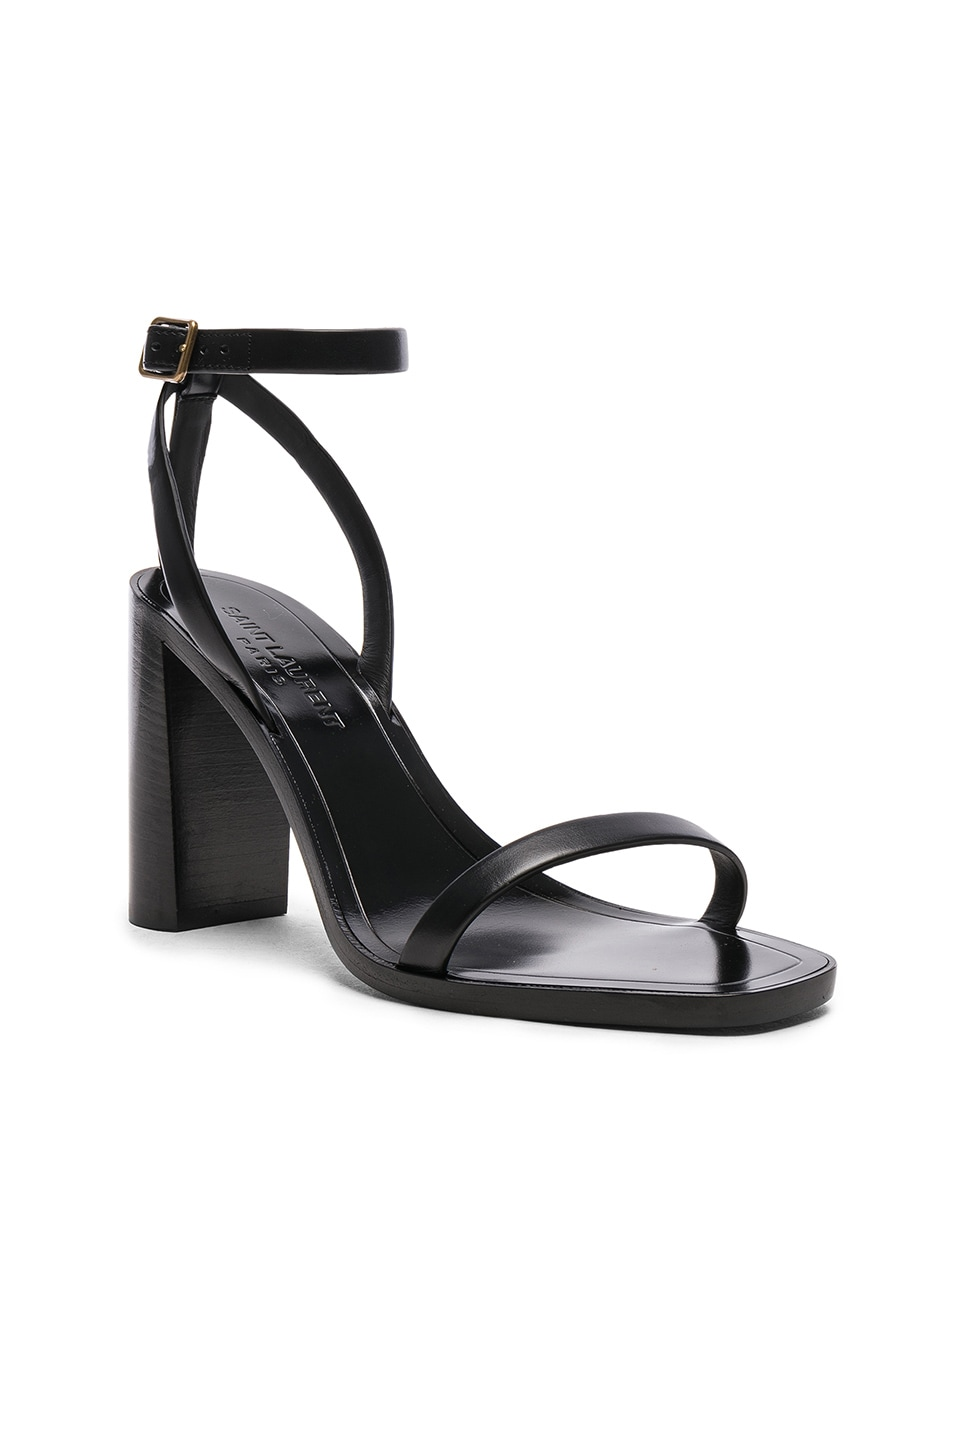 Image 2 of Saint Laurent Leather Loulou Ankle Strap Sandals in Black